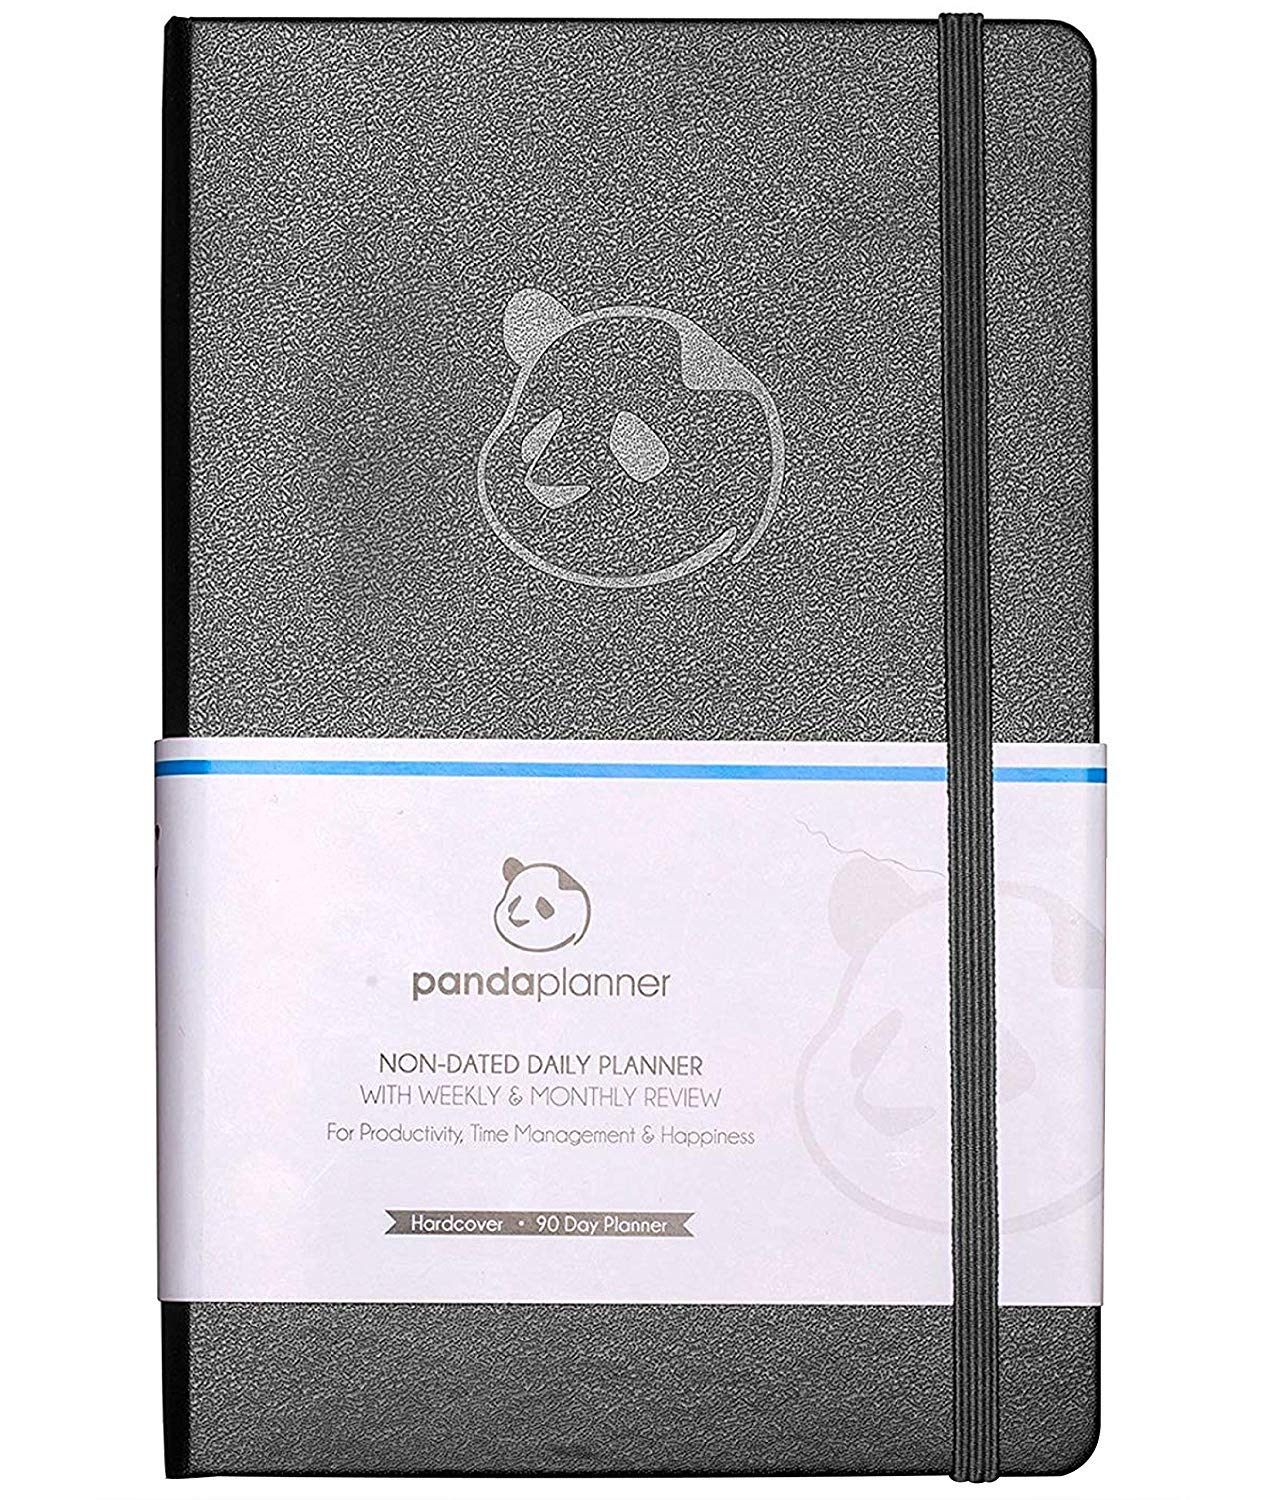 Daily Planner 2019-2020 by Panda Planner | High Performance Time Management Undated Planner | Calendar and Gratitude Journal to Increase Productivity | Undated Monthly Weekly Day Planner